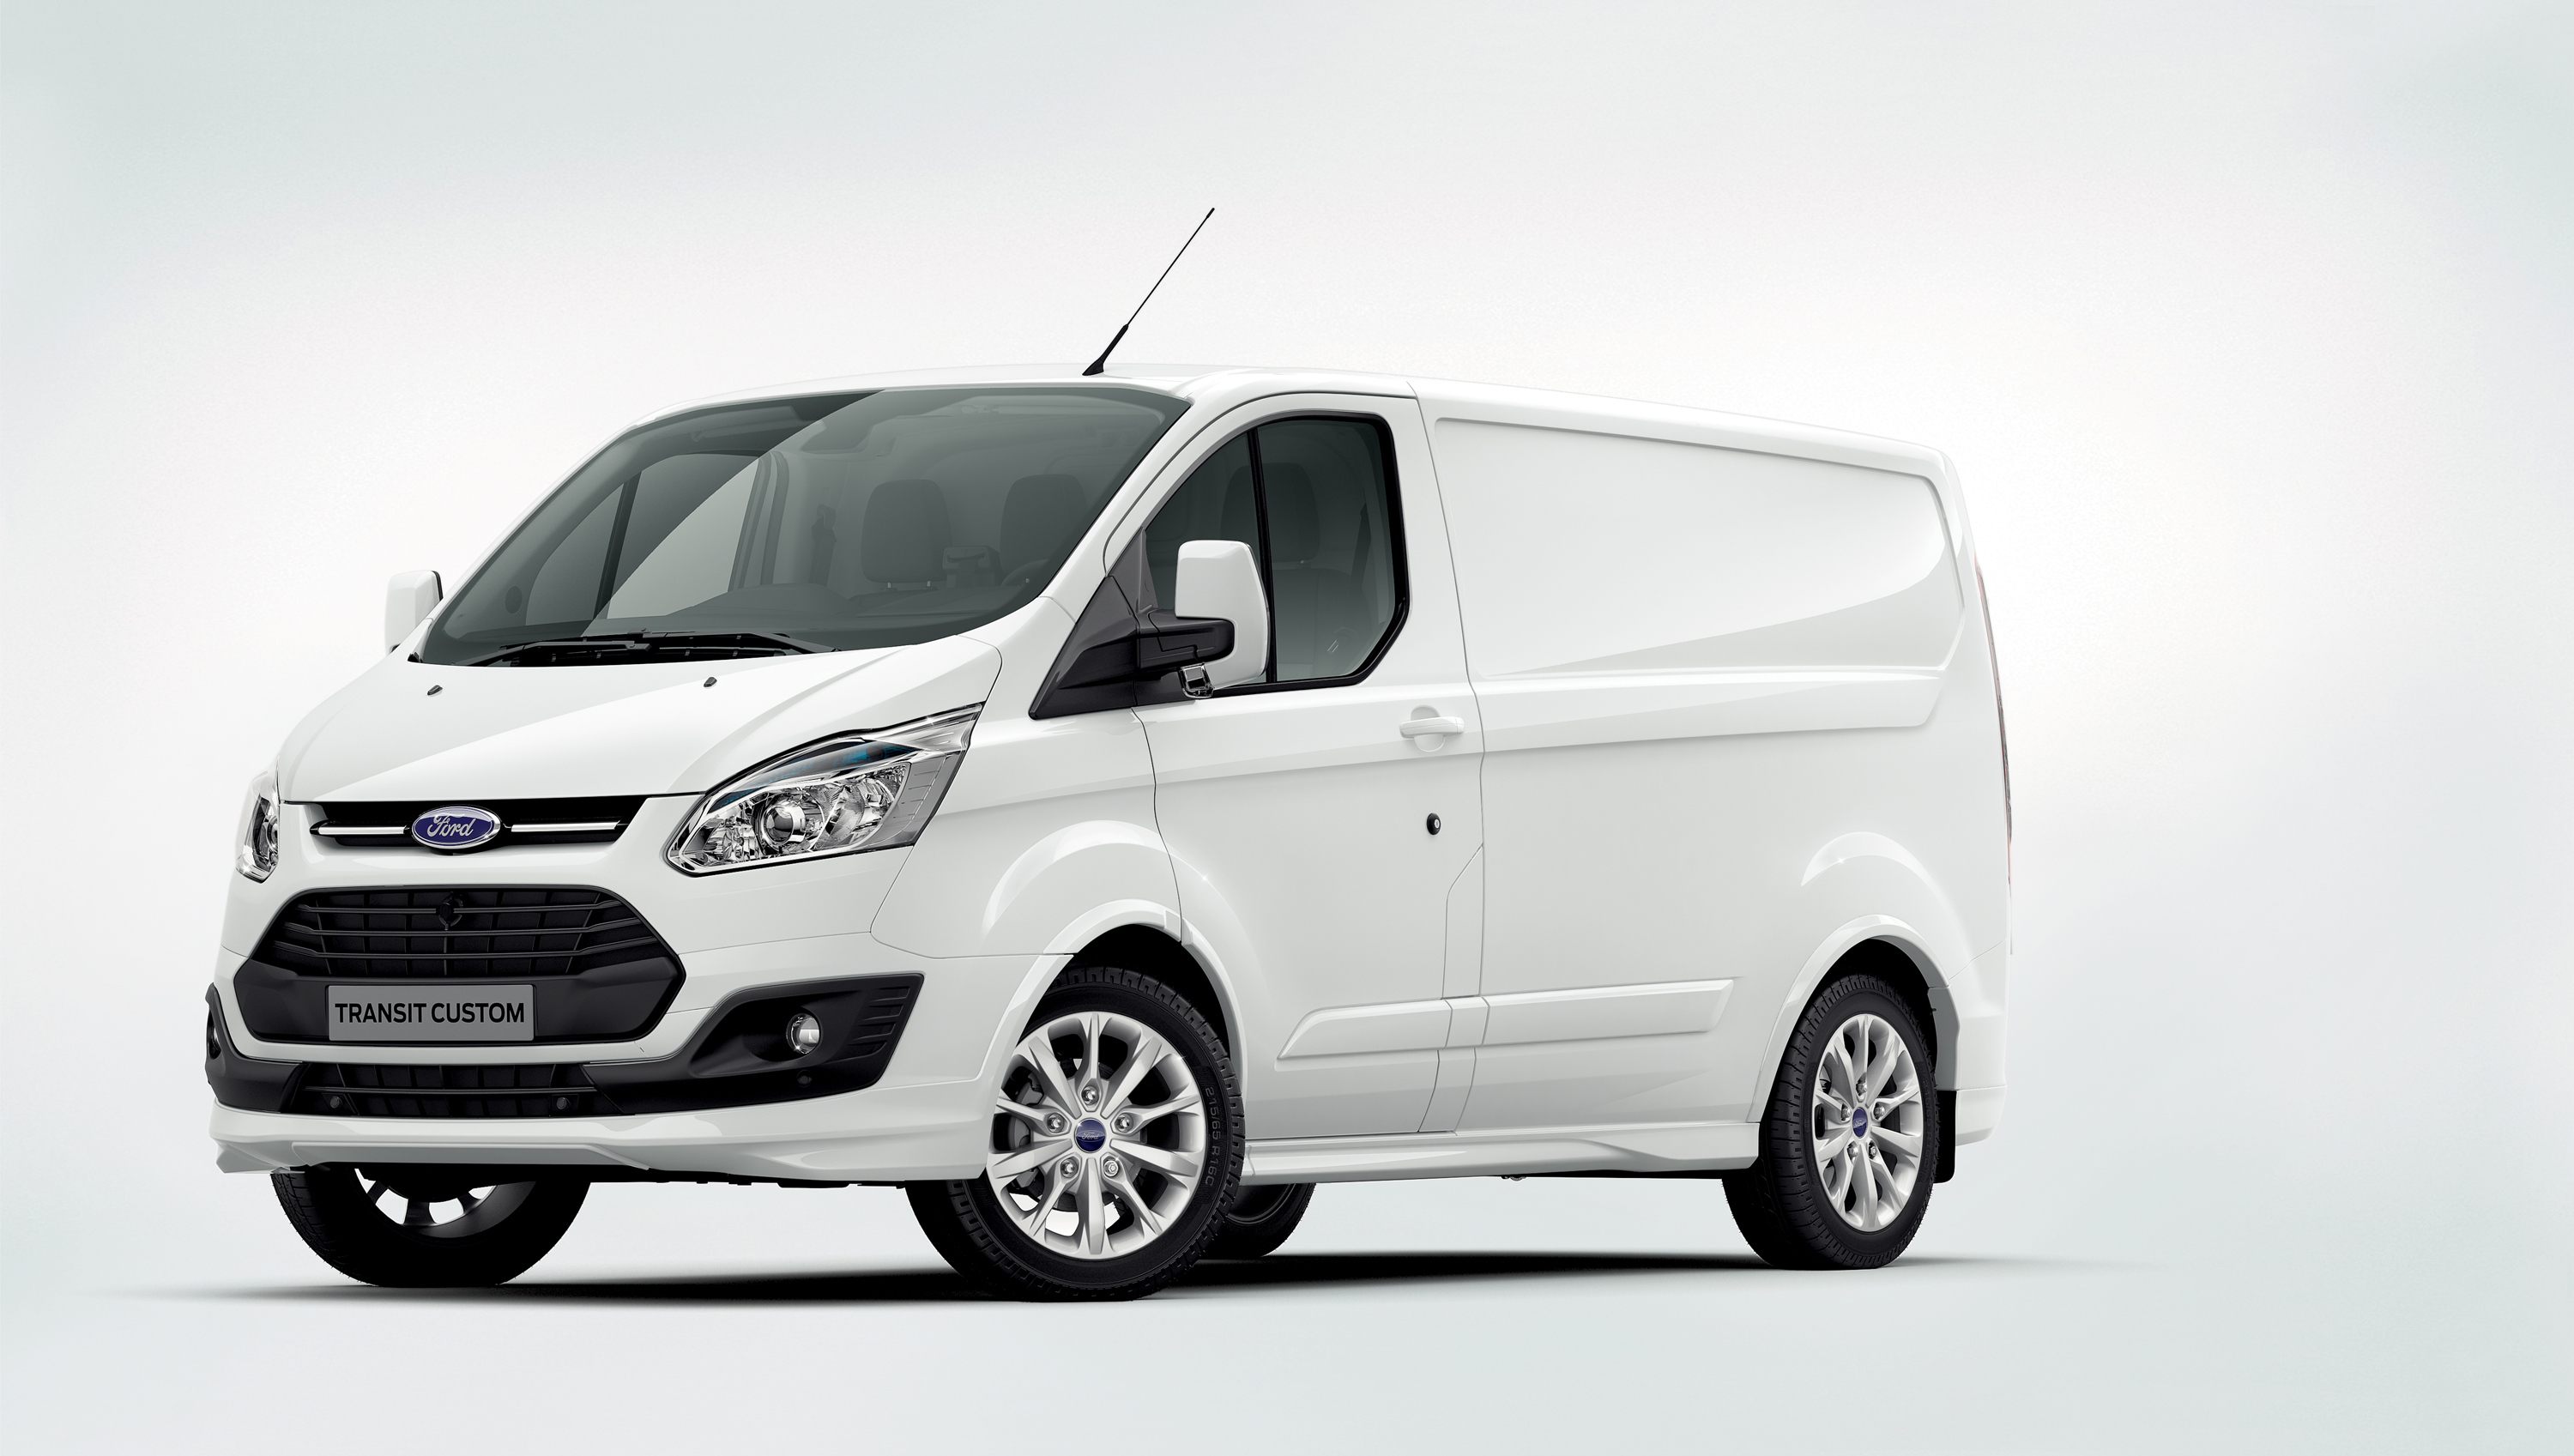 The Bestselling Commercial Vans Of 2015 Hope Technical Developments Ltd